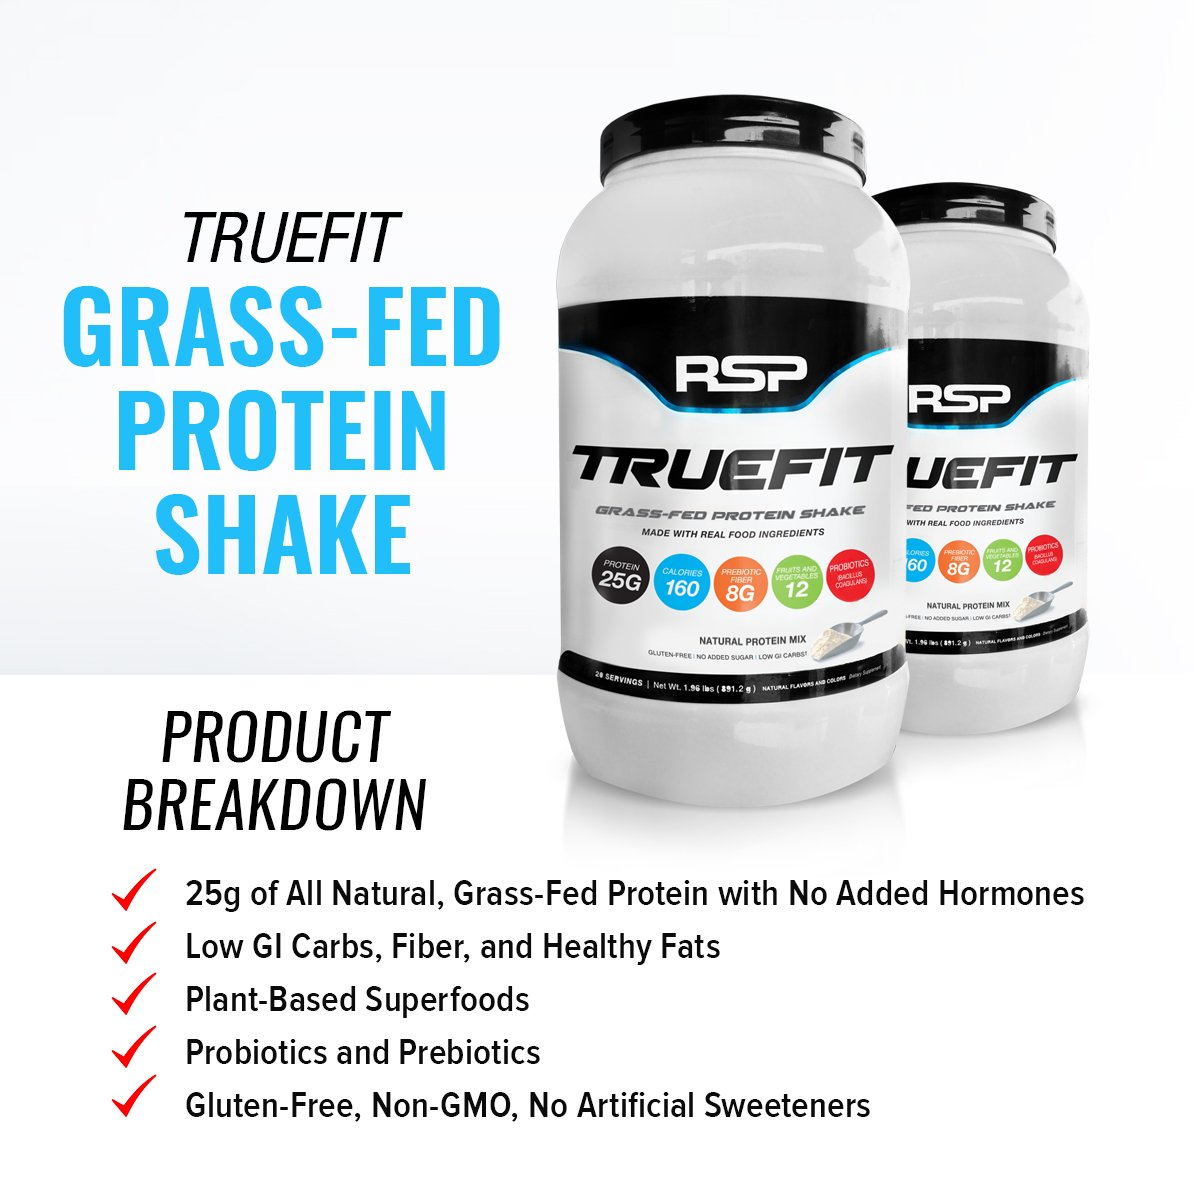 https://rspnutrition.com/products/truefit?variant=38356028993